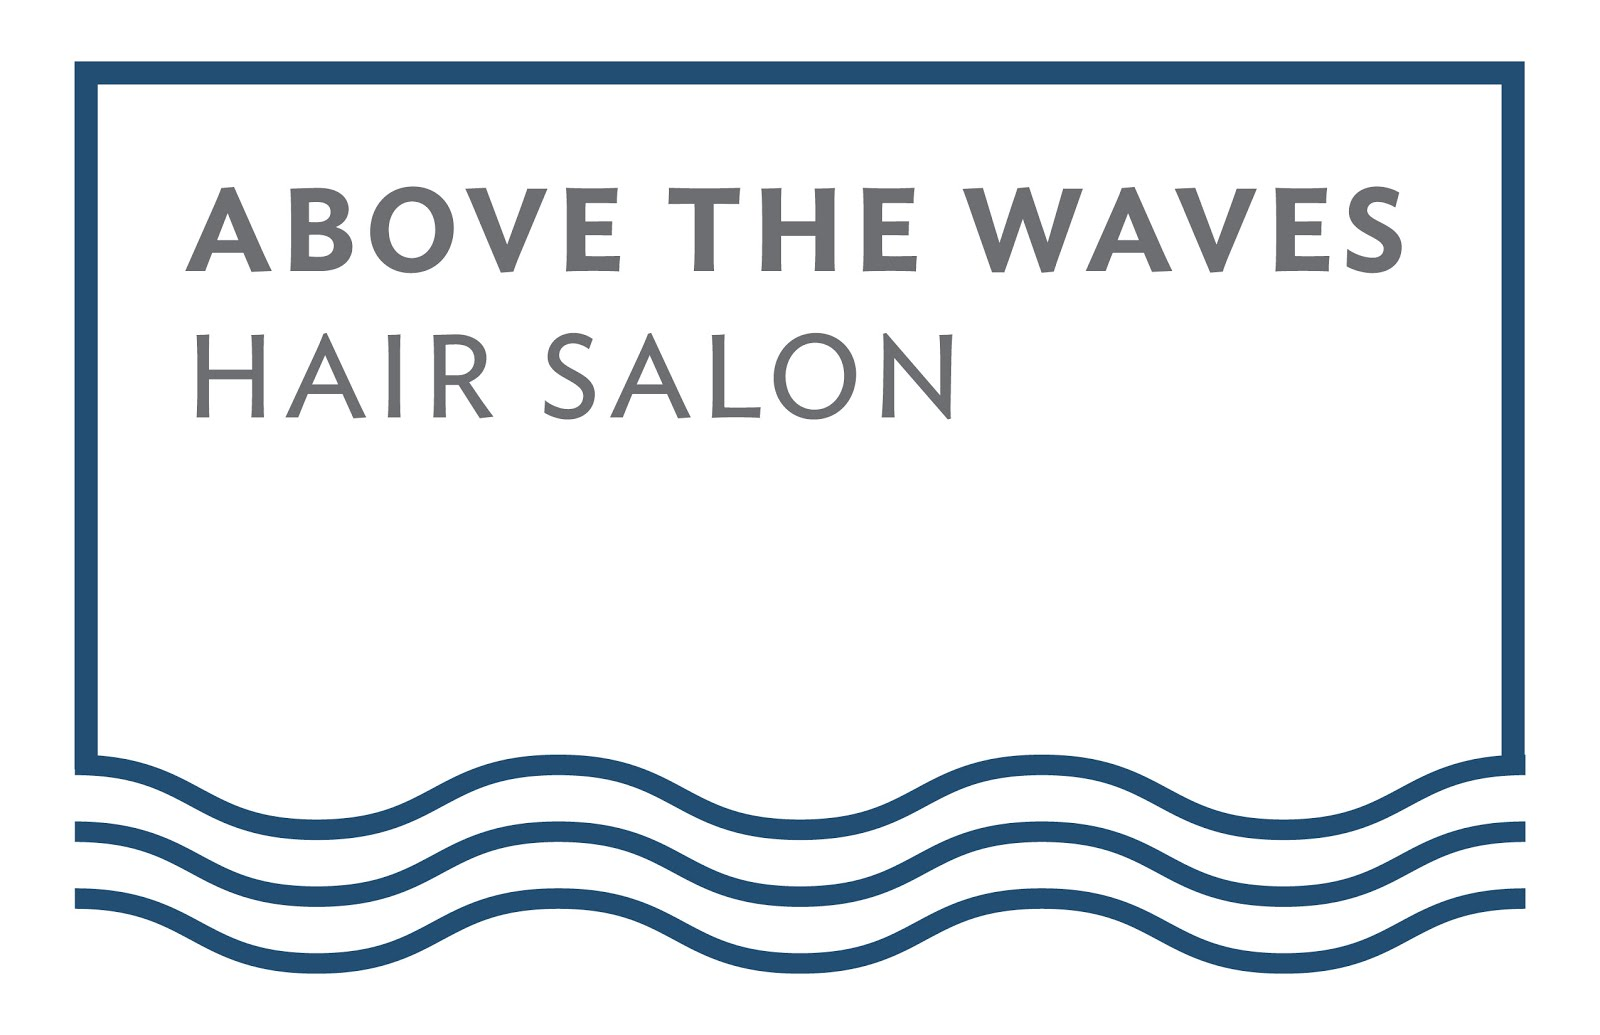 Above The Waves Hair Salon